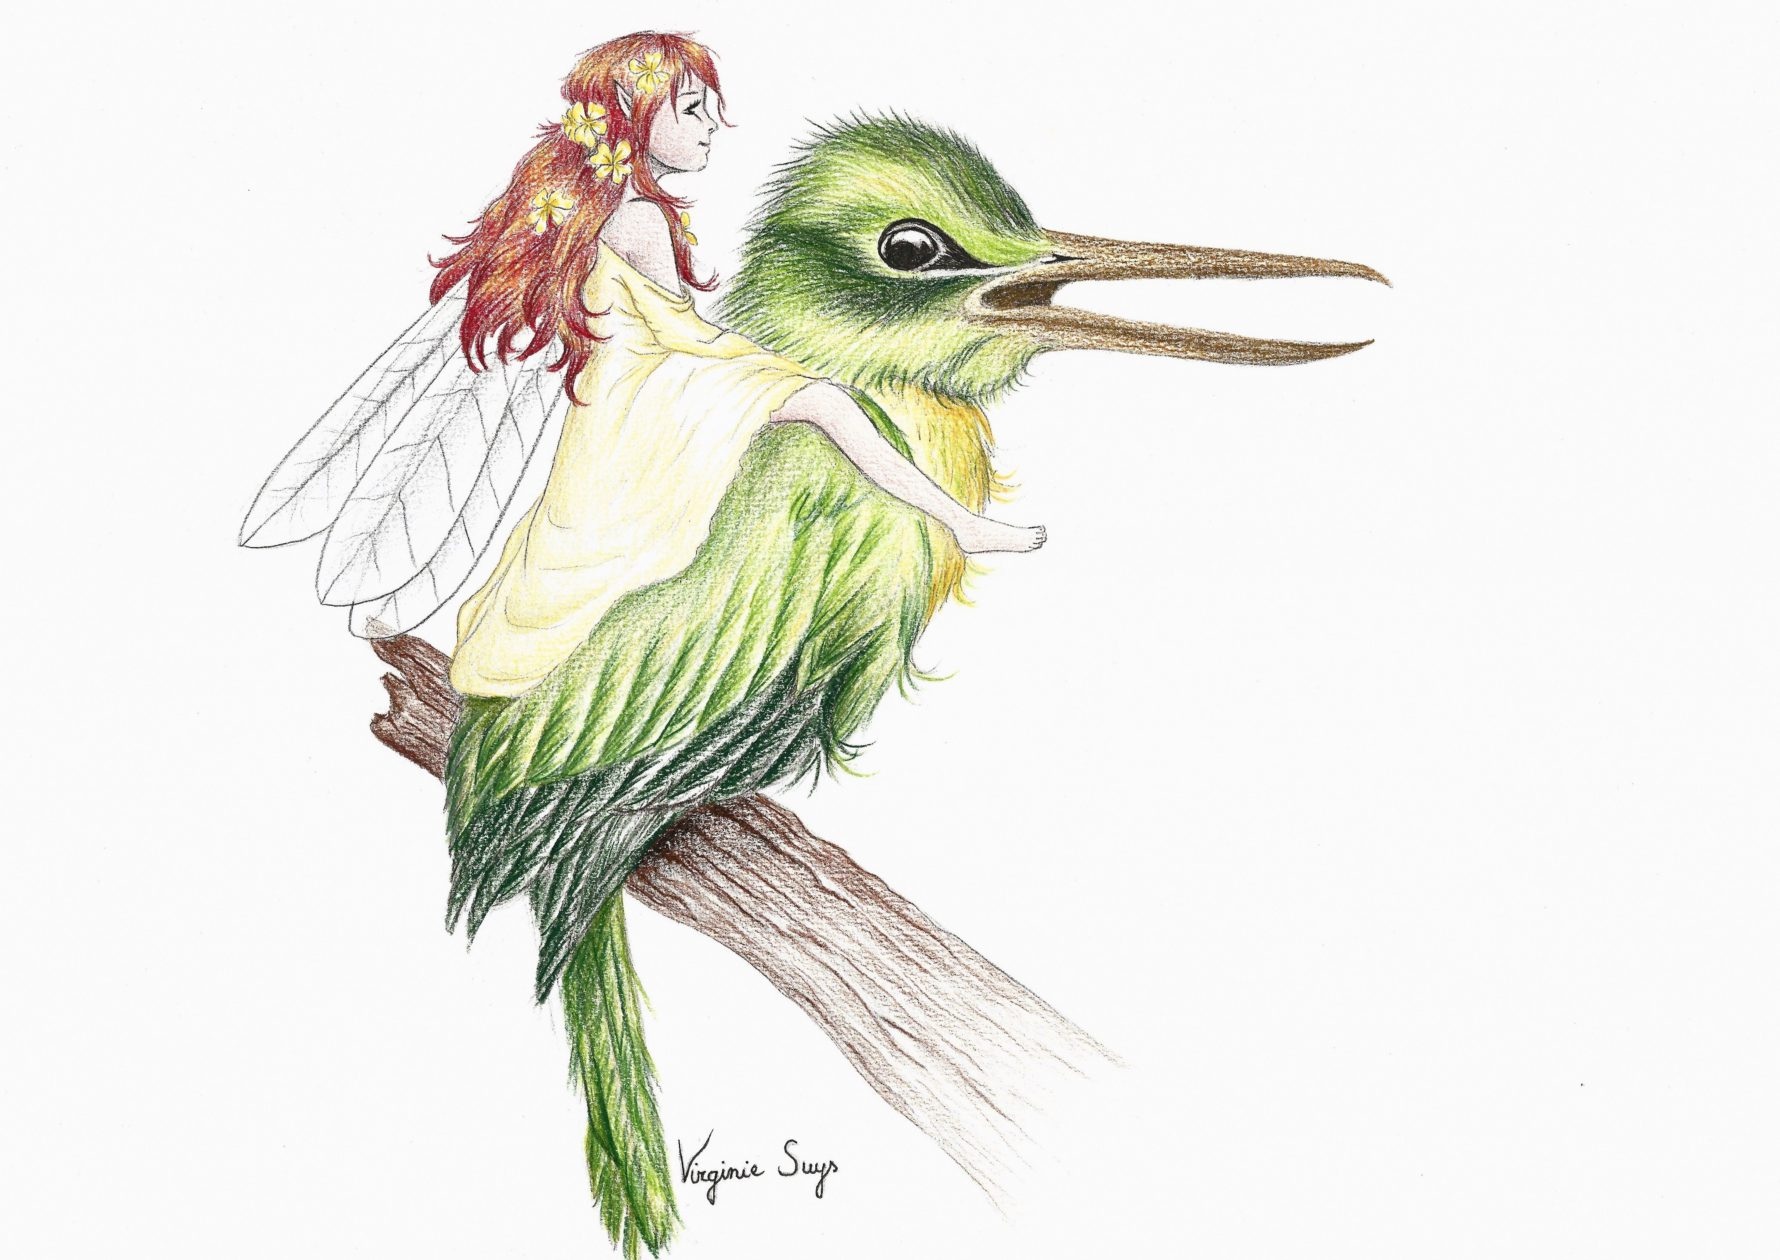 Virginie Suys Big bird & fairy in green-yellow illustration